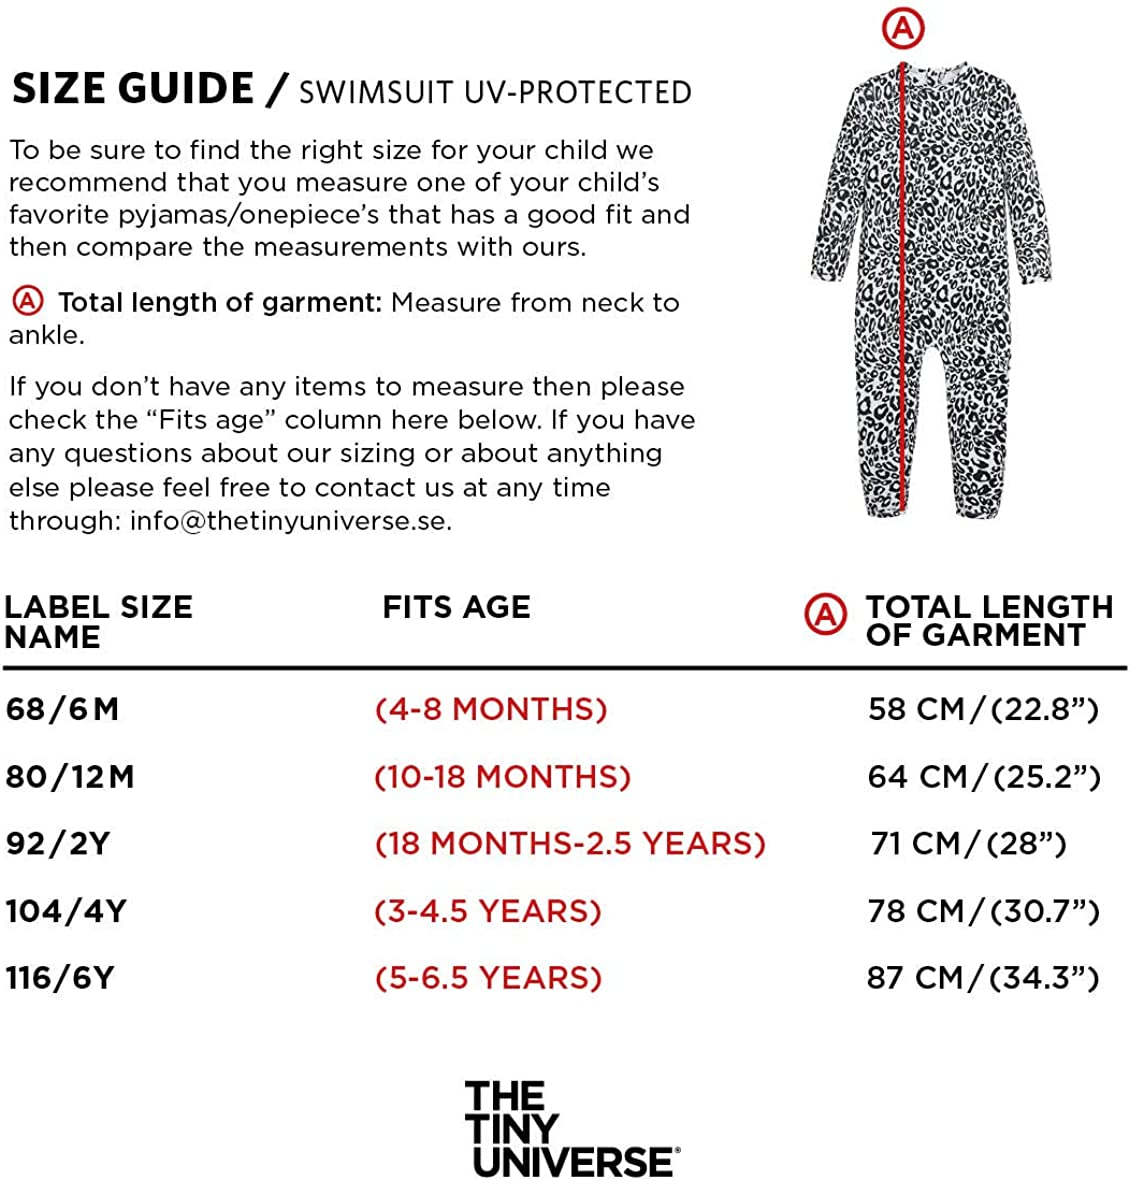 Unisex Baby Boys and Girls UPF 50+ Swimsuit Long Sleeve Snow Leopard Snow Leopard, 68 // 6M The Tiny Universe UV Protection Sunsuit Rash Guard